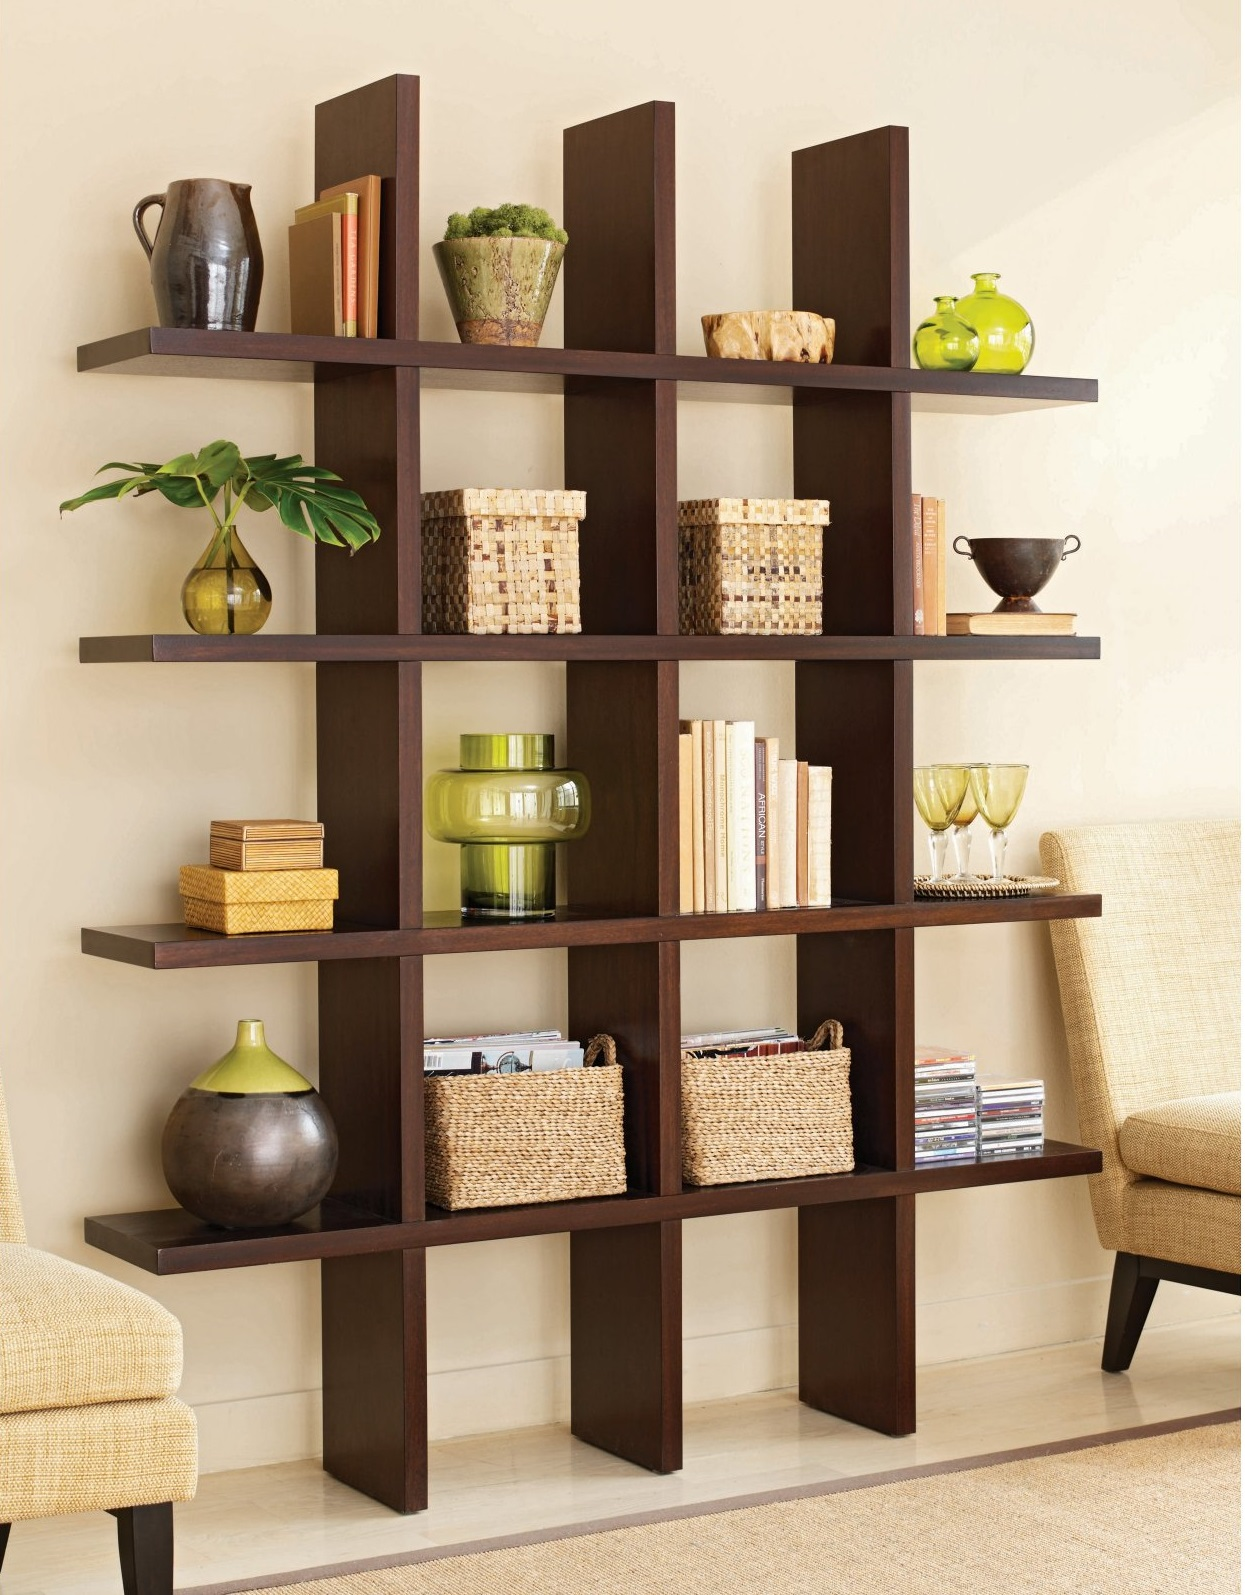 Interesting Style Of Semi Circle Wooden Wall Book Shelves Design